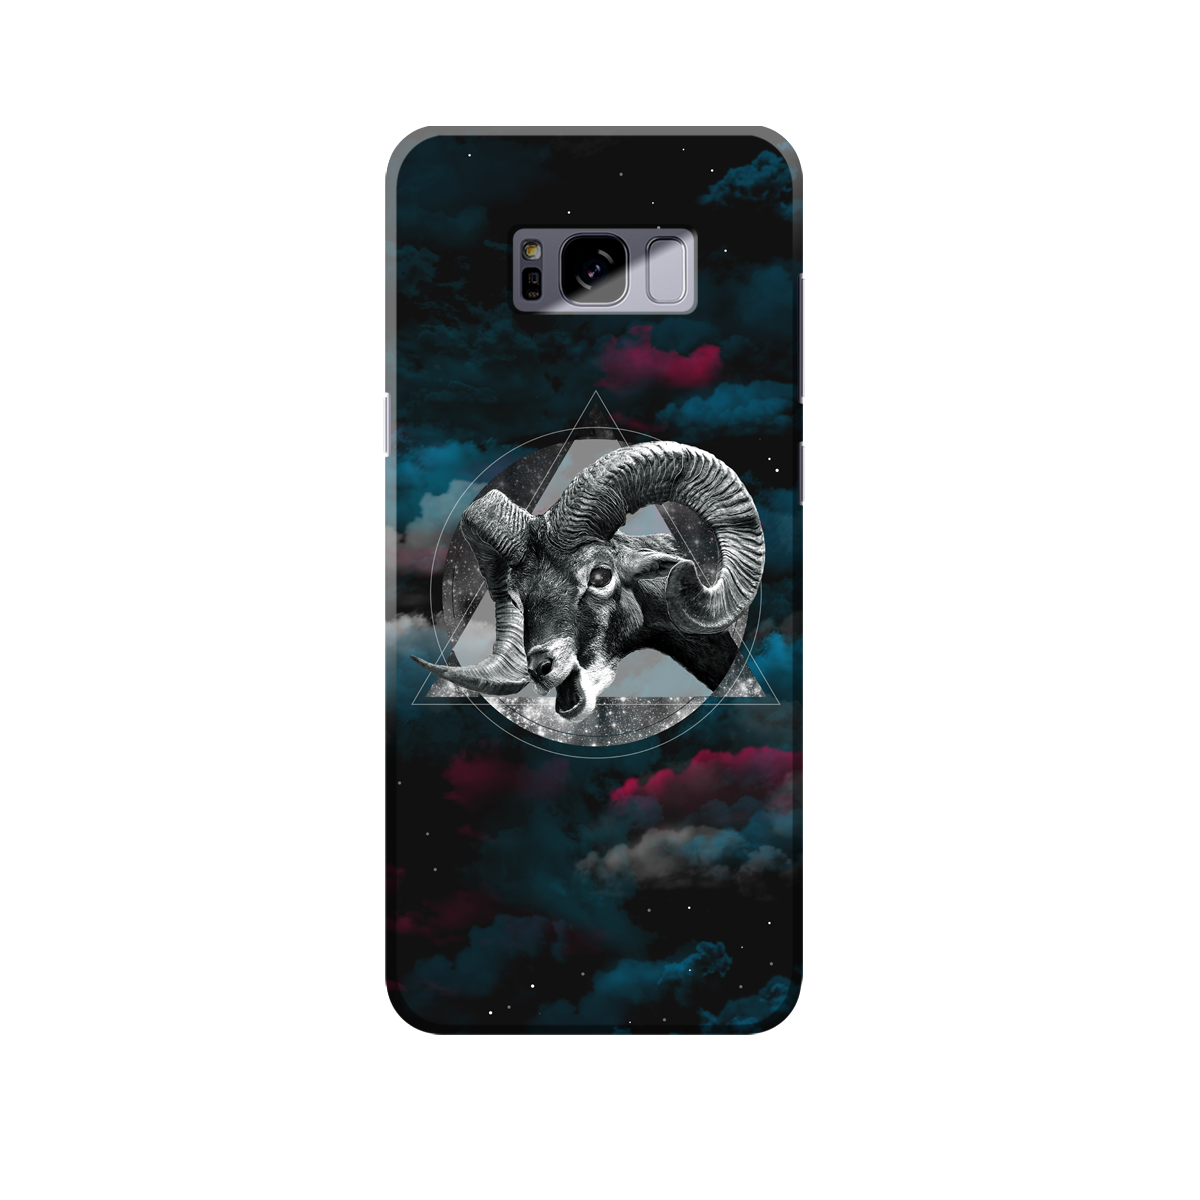 Horns & Space Phone Case Samsung S7